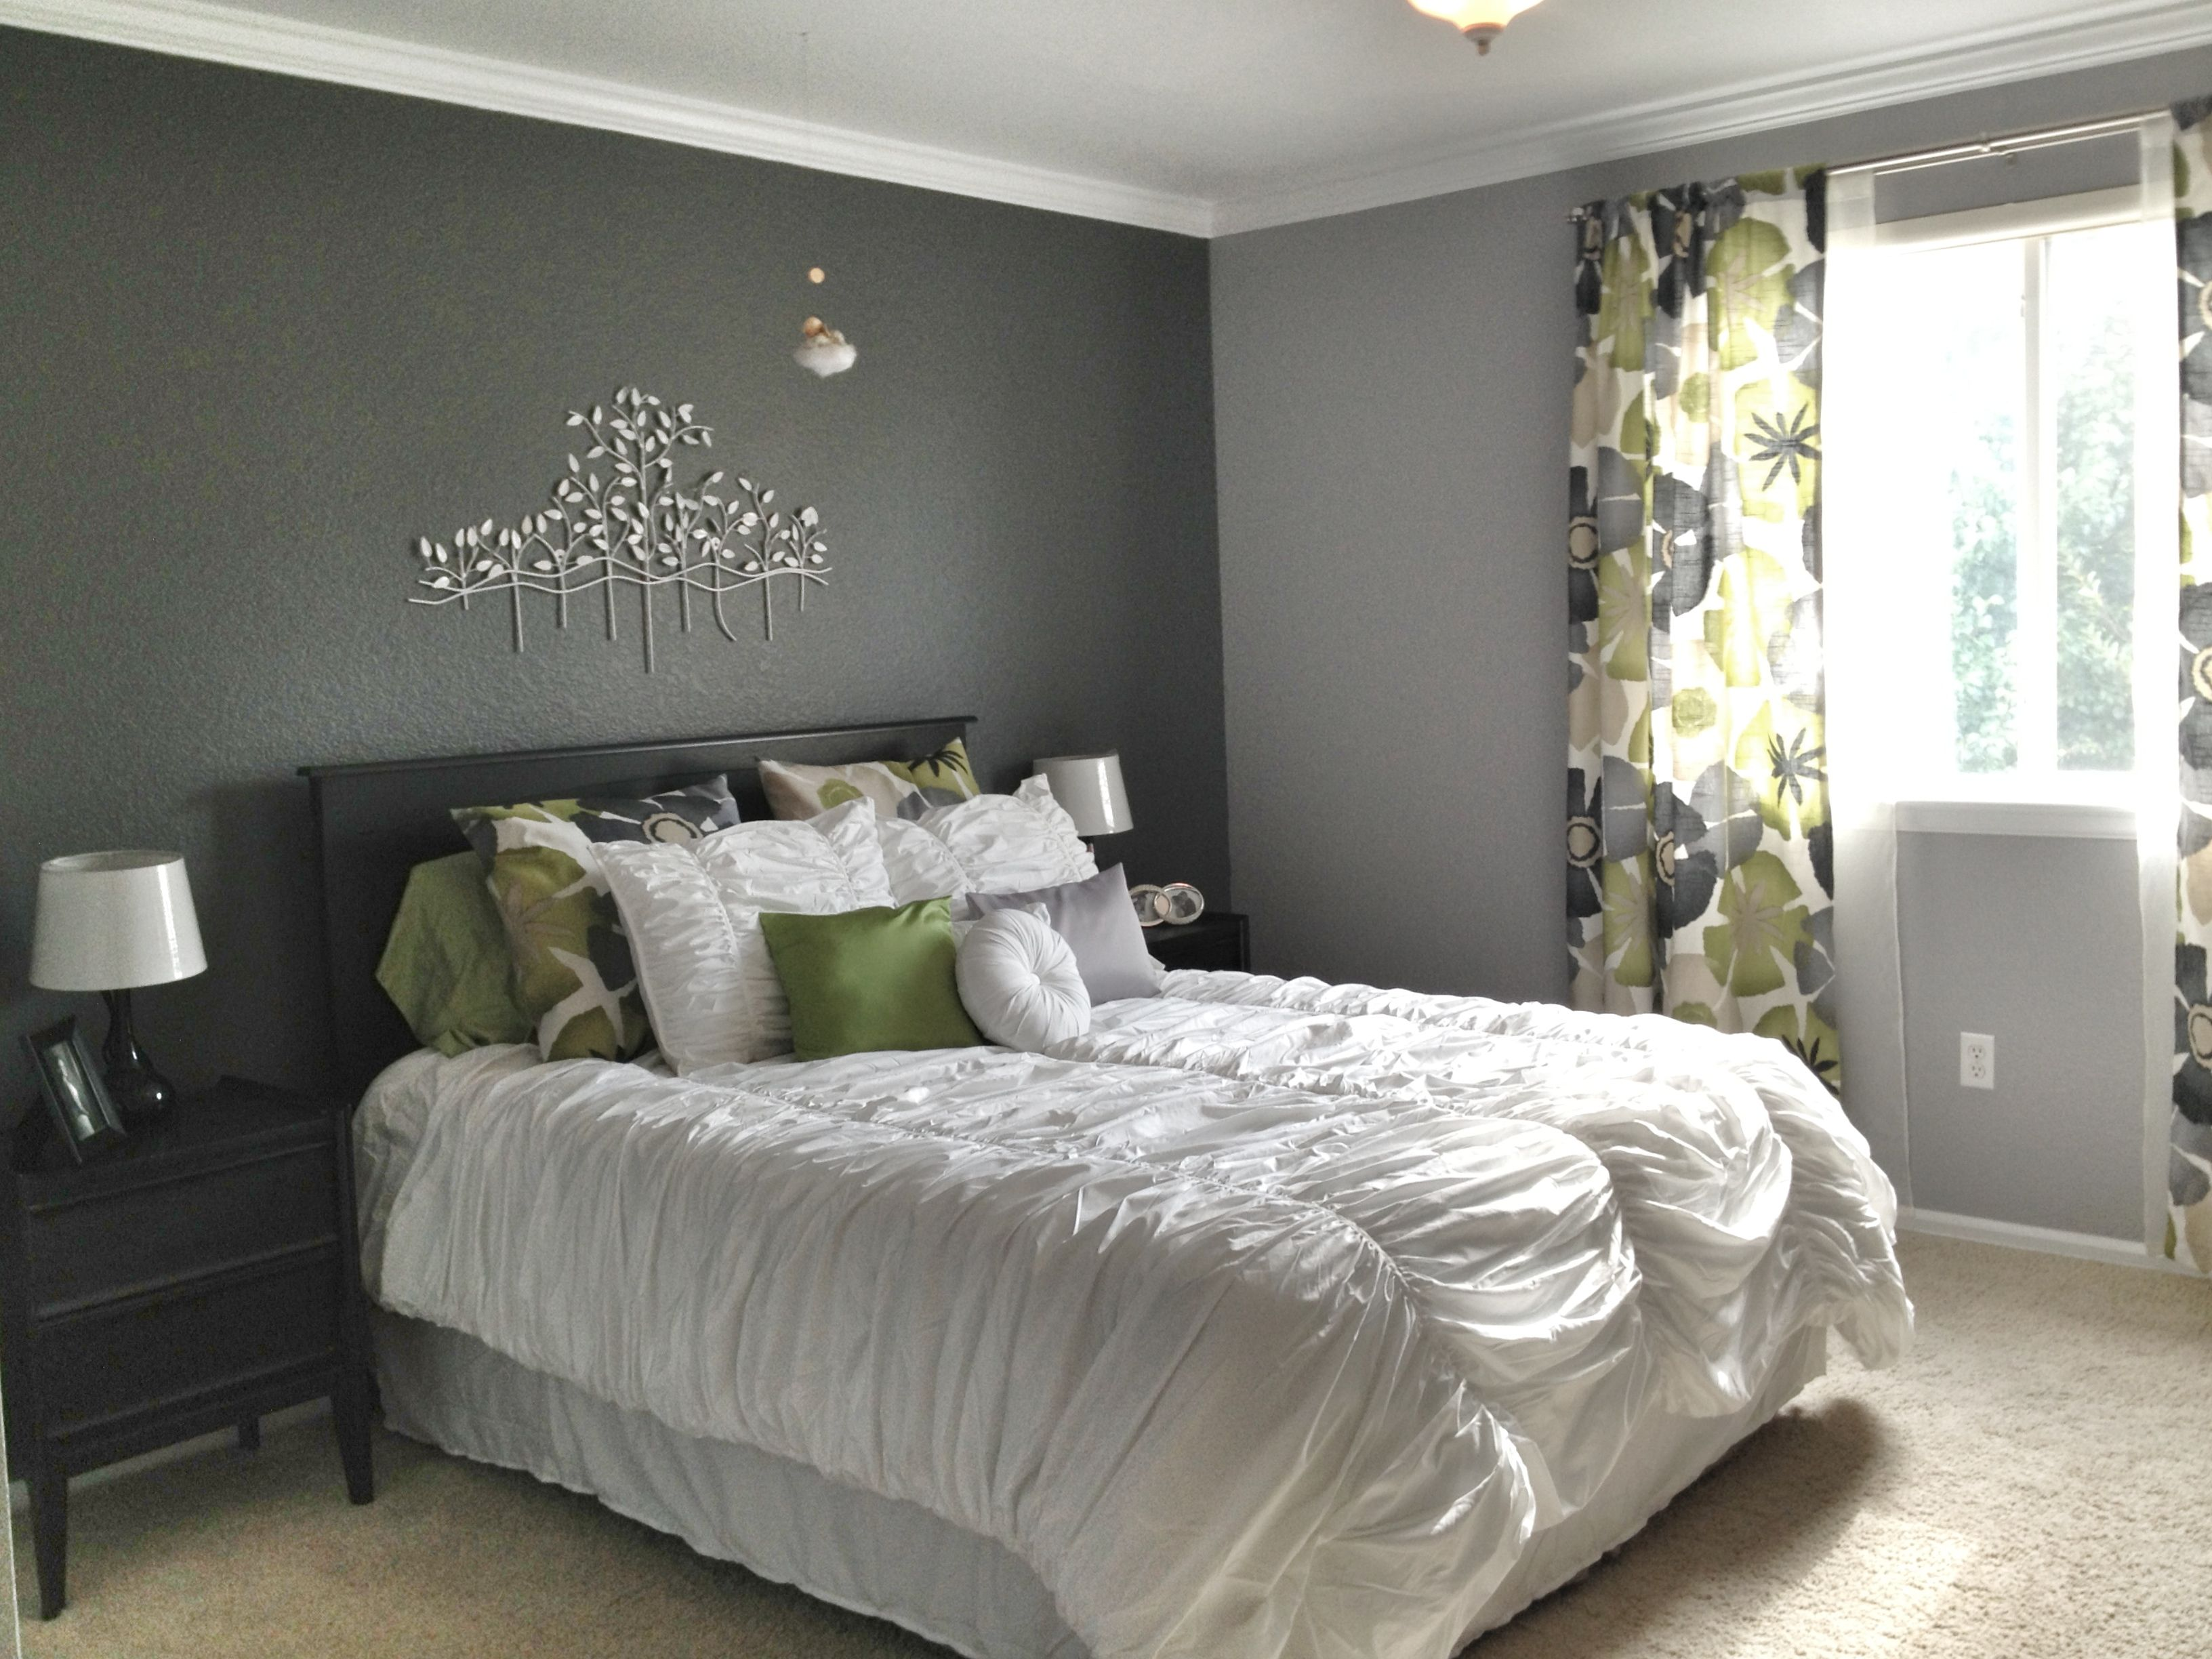 Grey Master Bedroom Dark Accent Wall Fun Patterned Curtains With Matching Shams And Bright